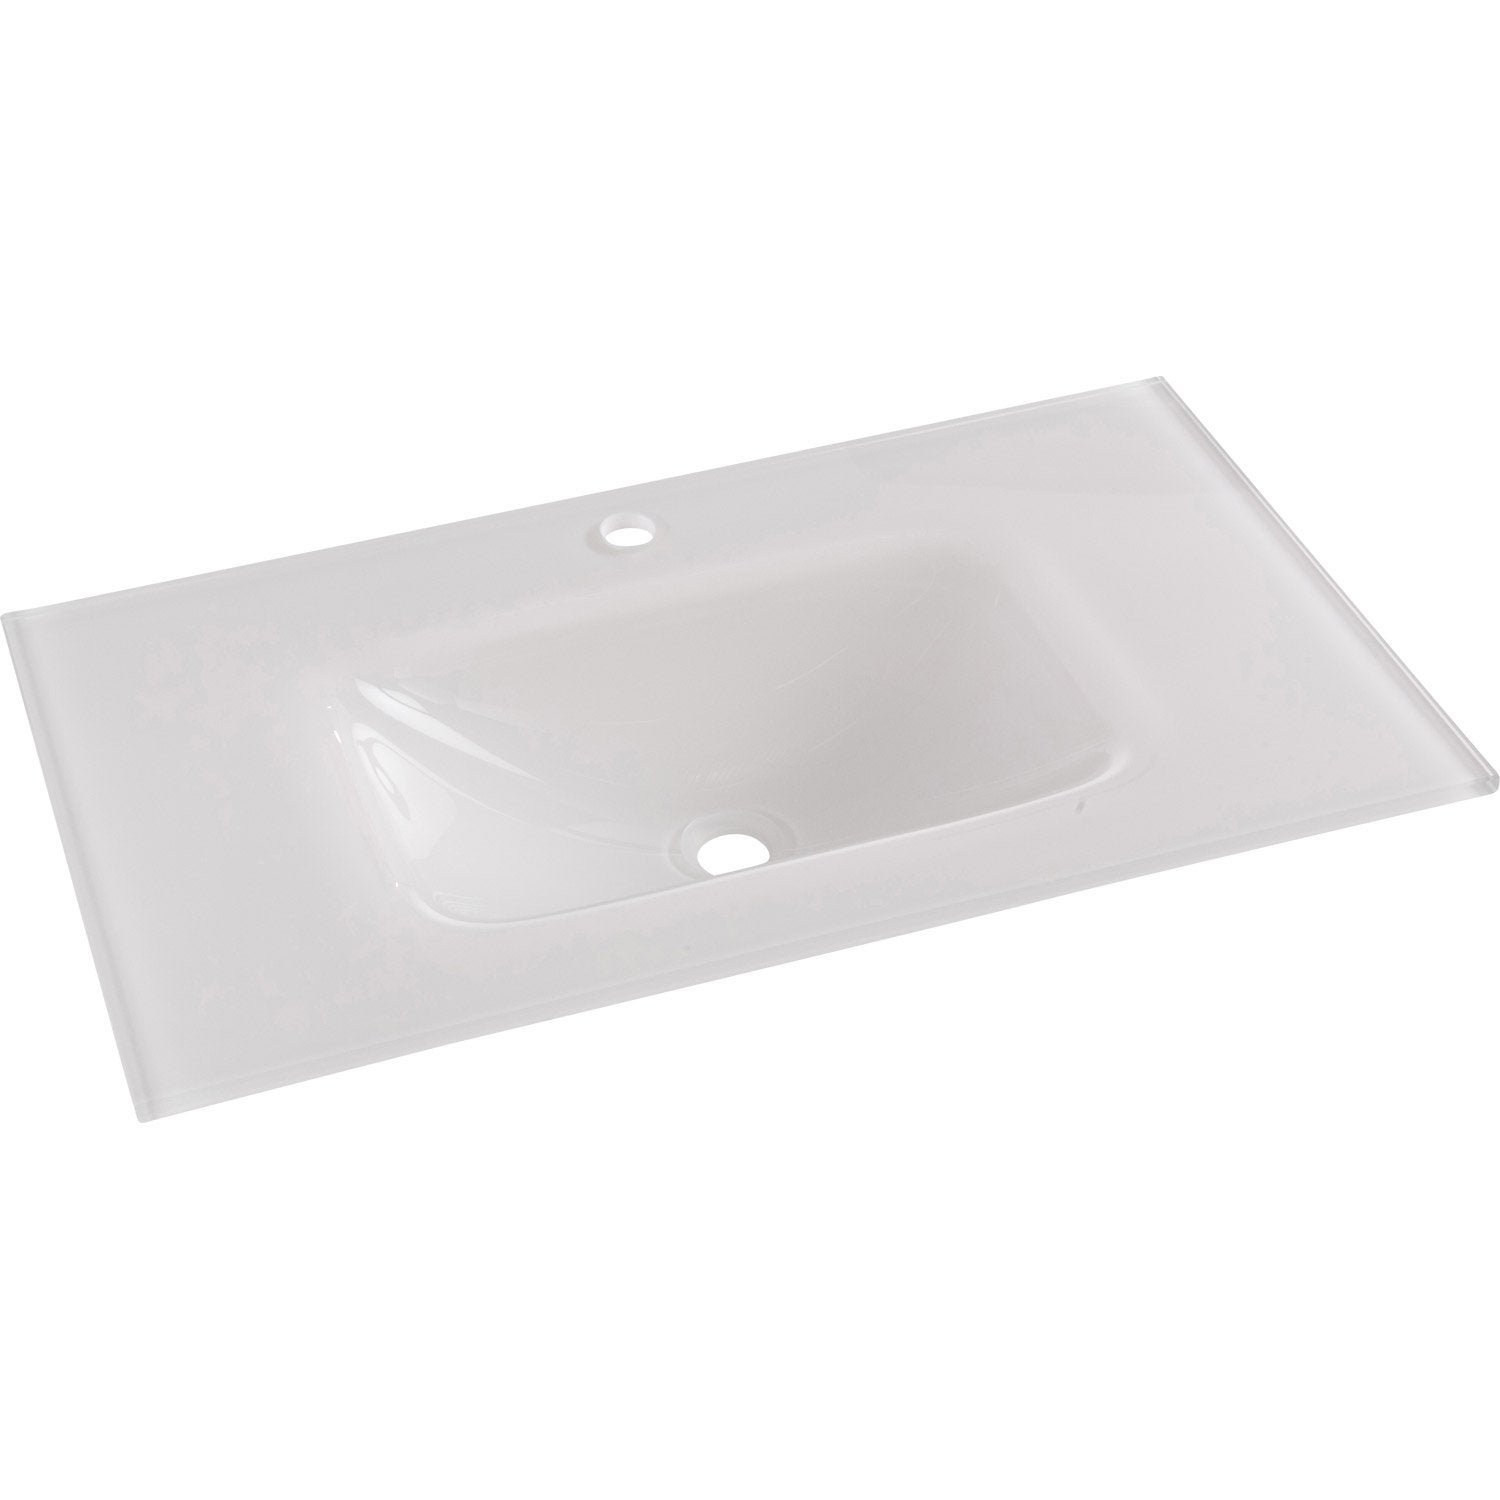 Plan vasque simple opale verre tremp 81 cm leroy merlin - Leroy merlin lavabo colonne ...